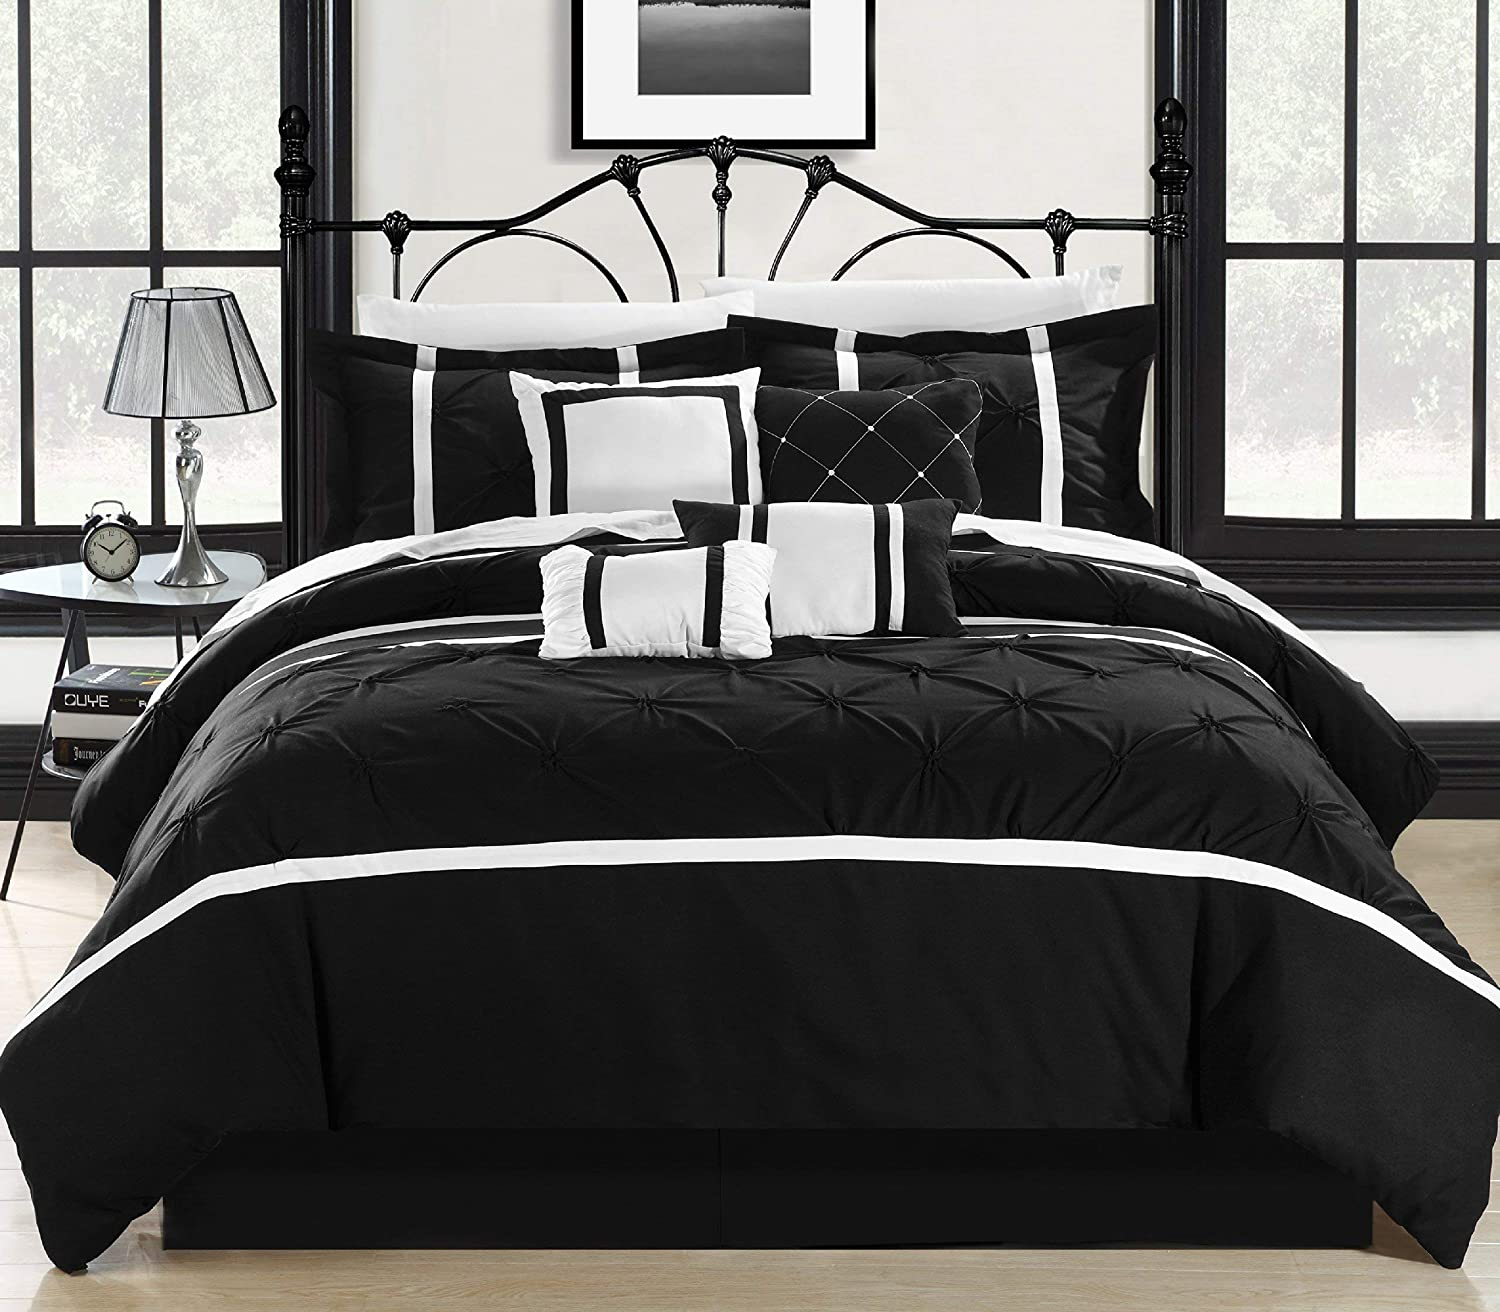 Chic Home Vermont/White 8 Pc Comforter Set, King, Black